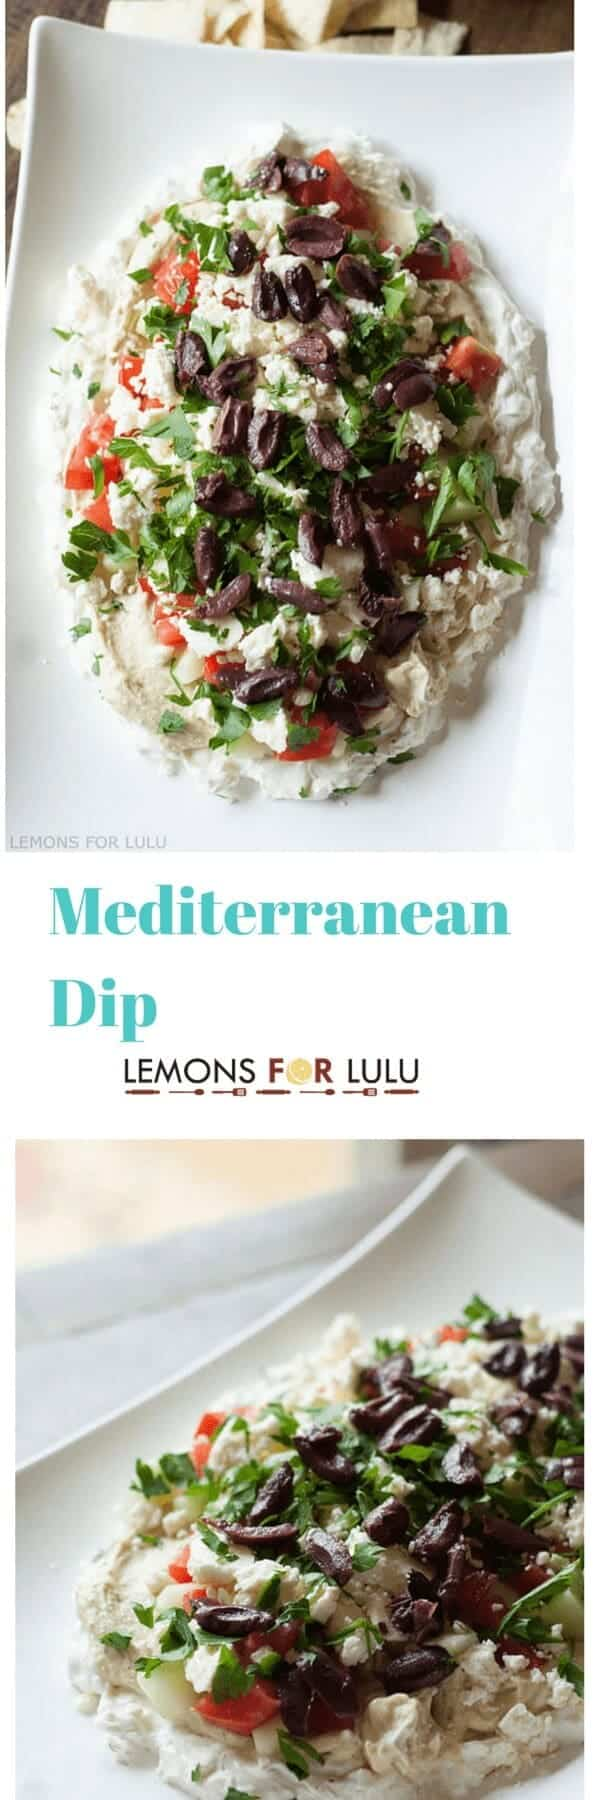 Mediterranean Dip starts with creamy Greek yogurt seasoned with Greek seasoning, flavorful hummus, cucumbers, olives, tomatoes and feta cheese. This dip is so addicting, you'll want to have enough ingredients to whip up a second batch! lemonsforlulu.com